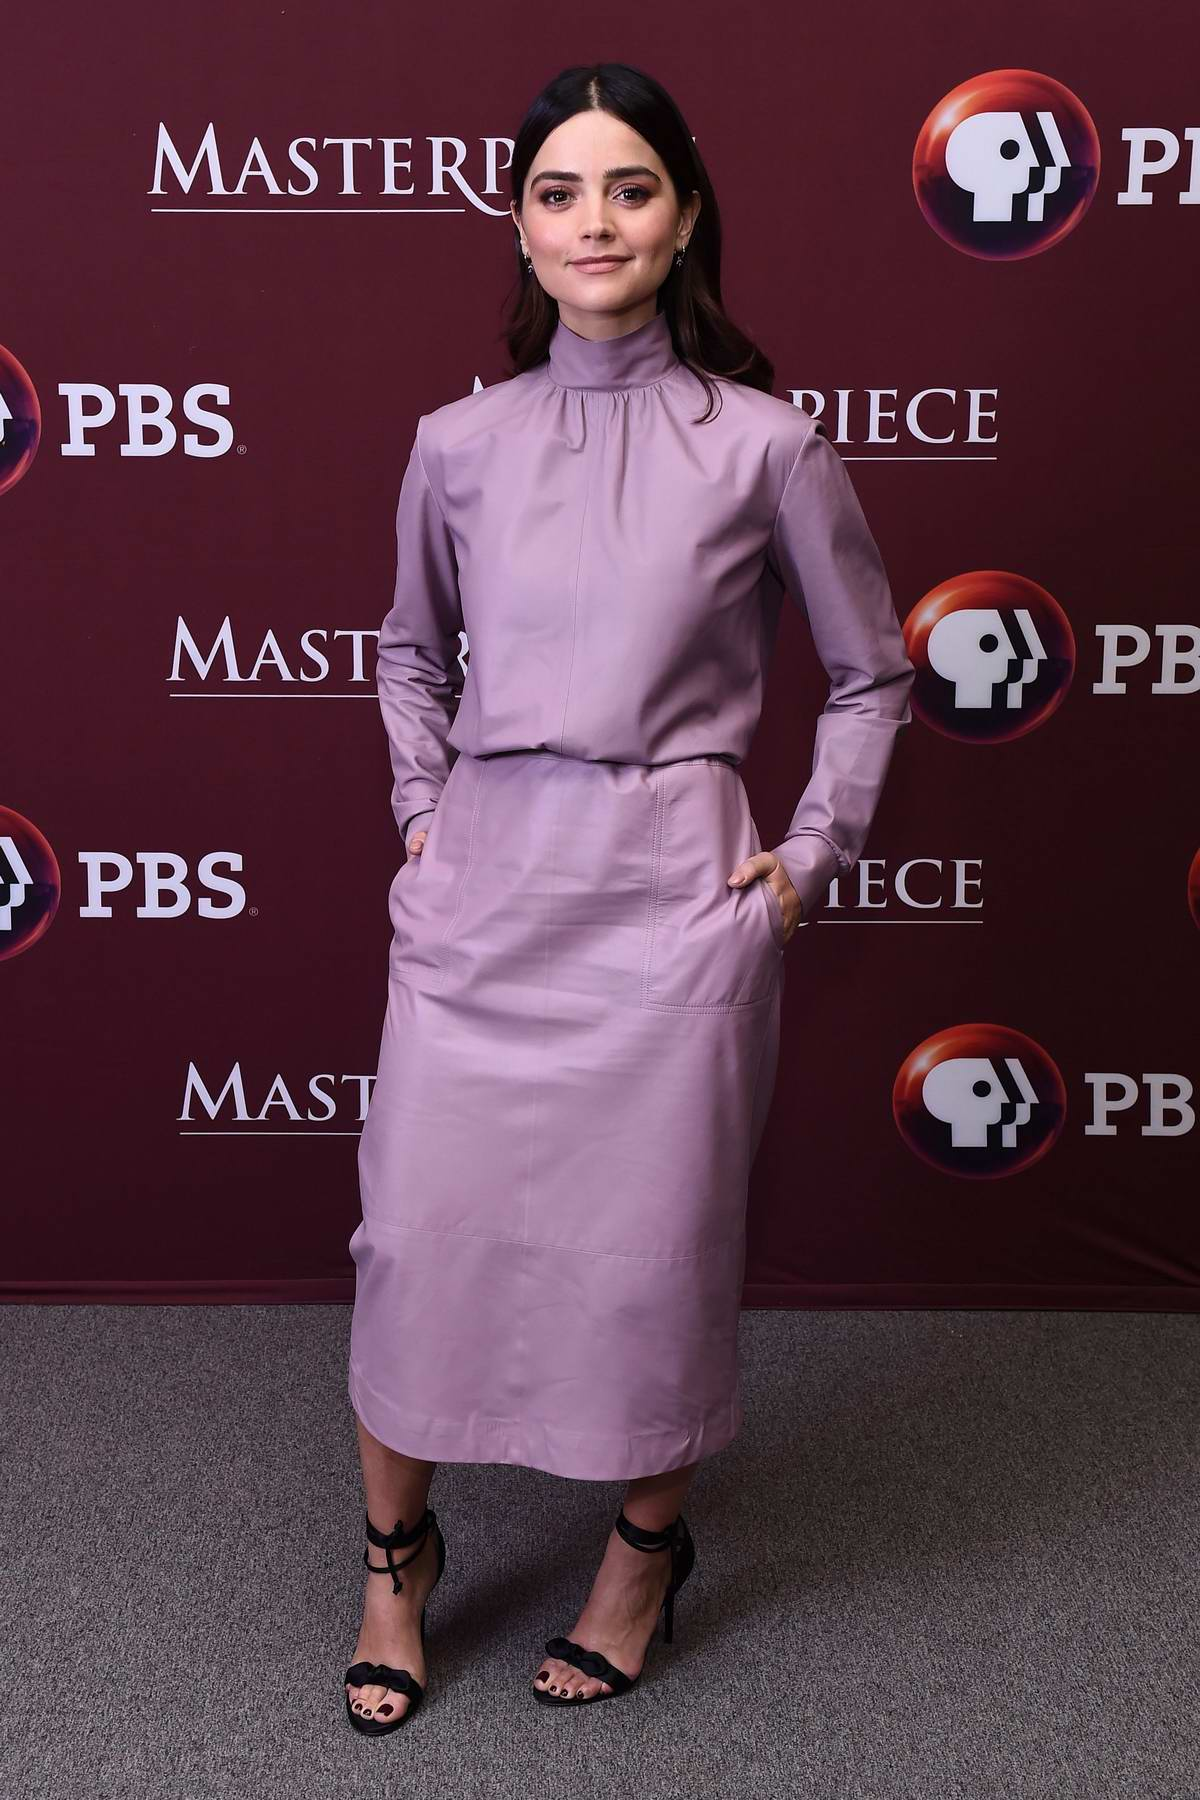 Jenna Coleman attends 'Victoria' Season 2 premiere on Masterpiece on PBS in New York City